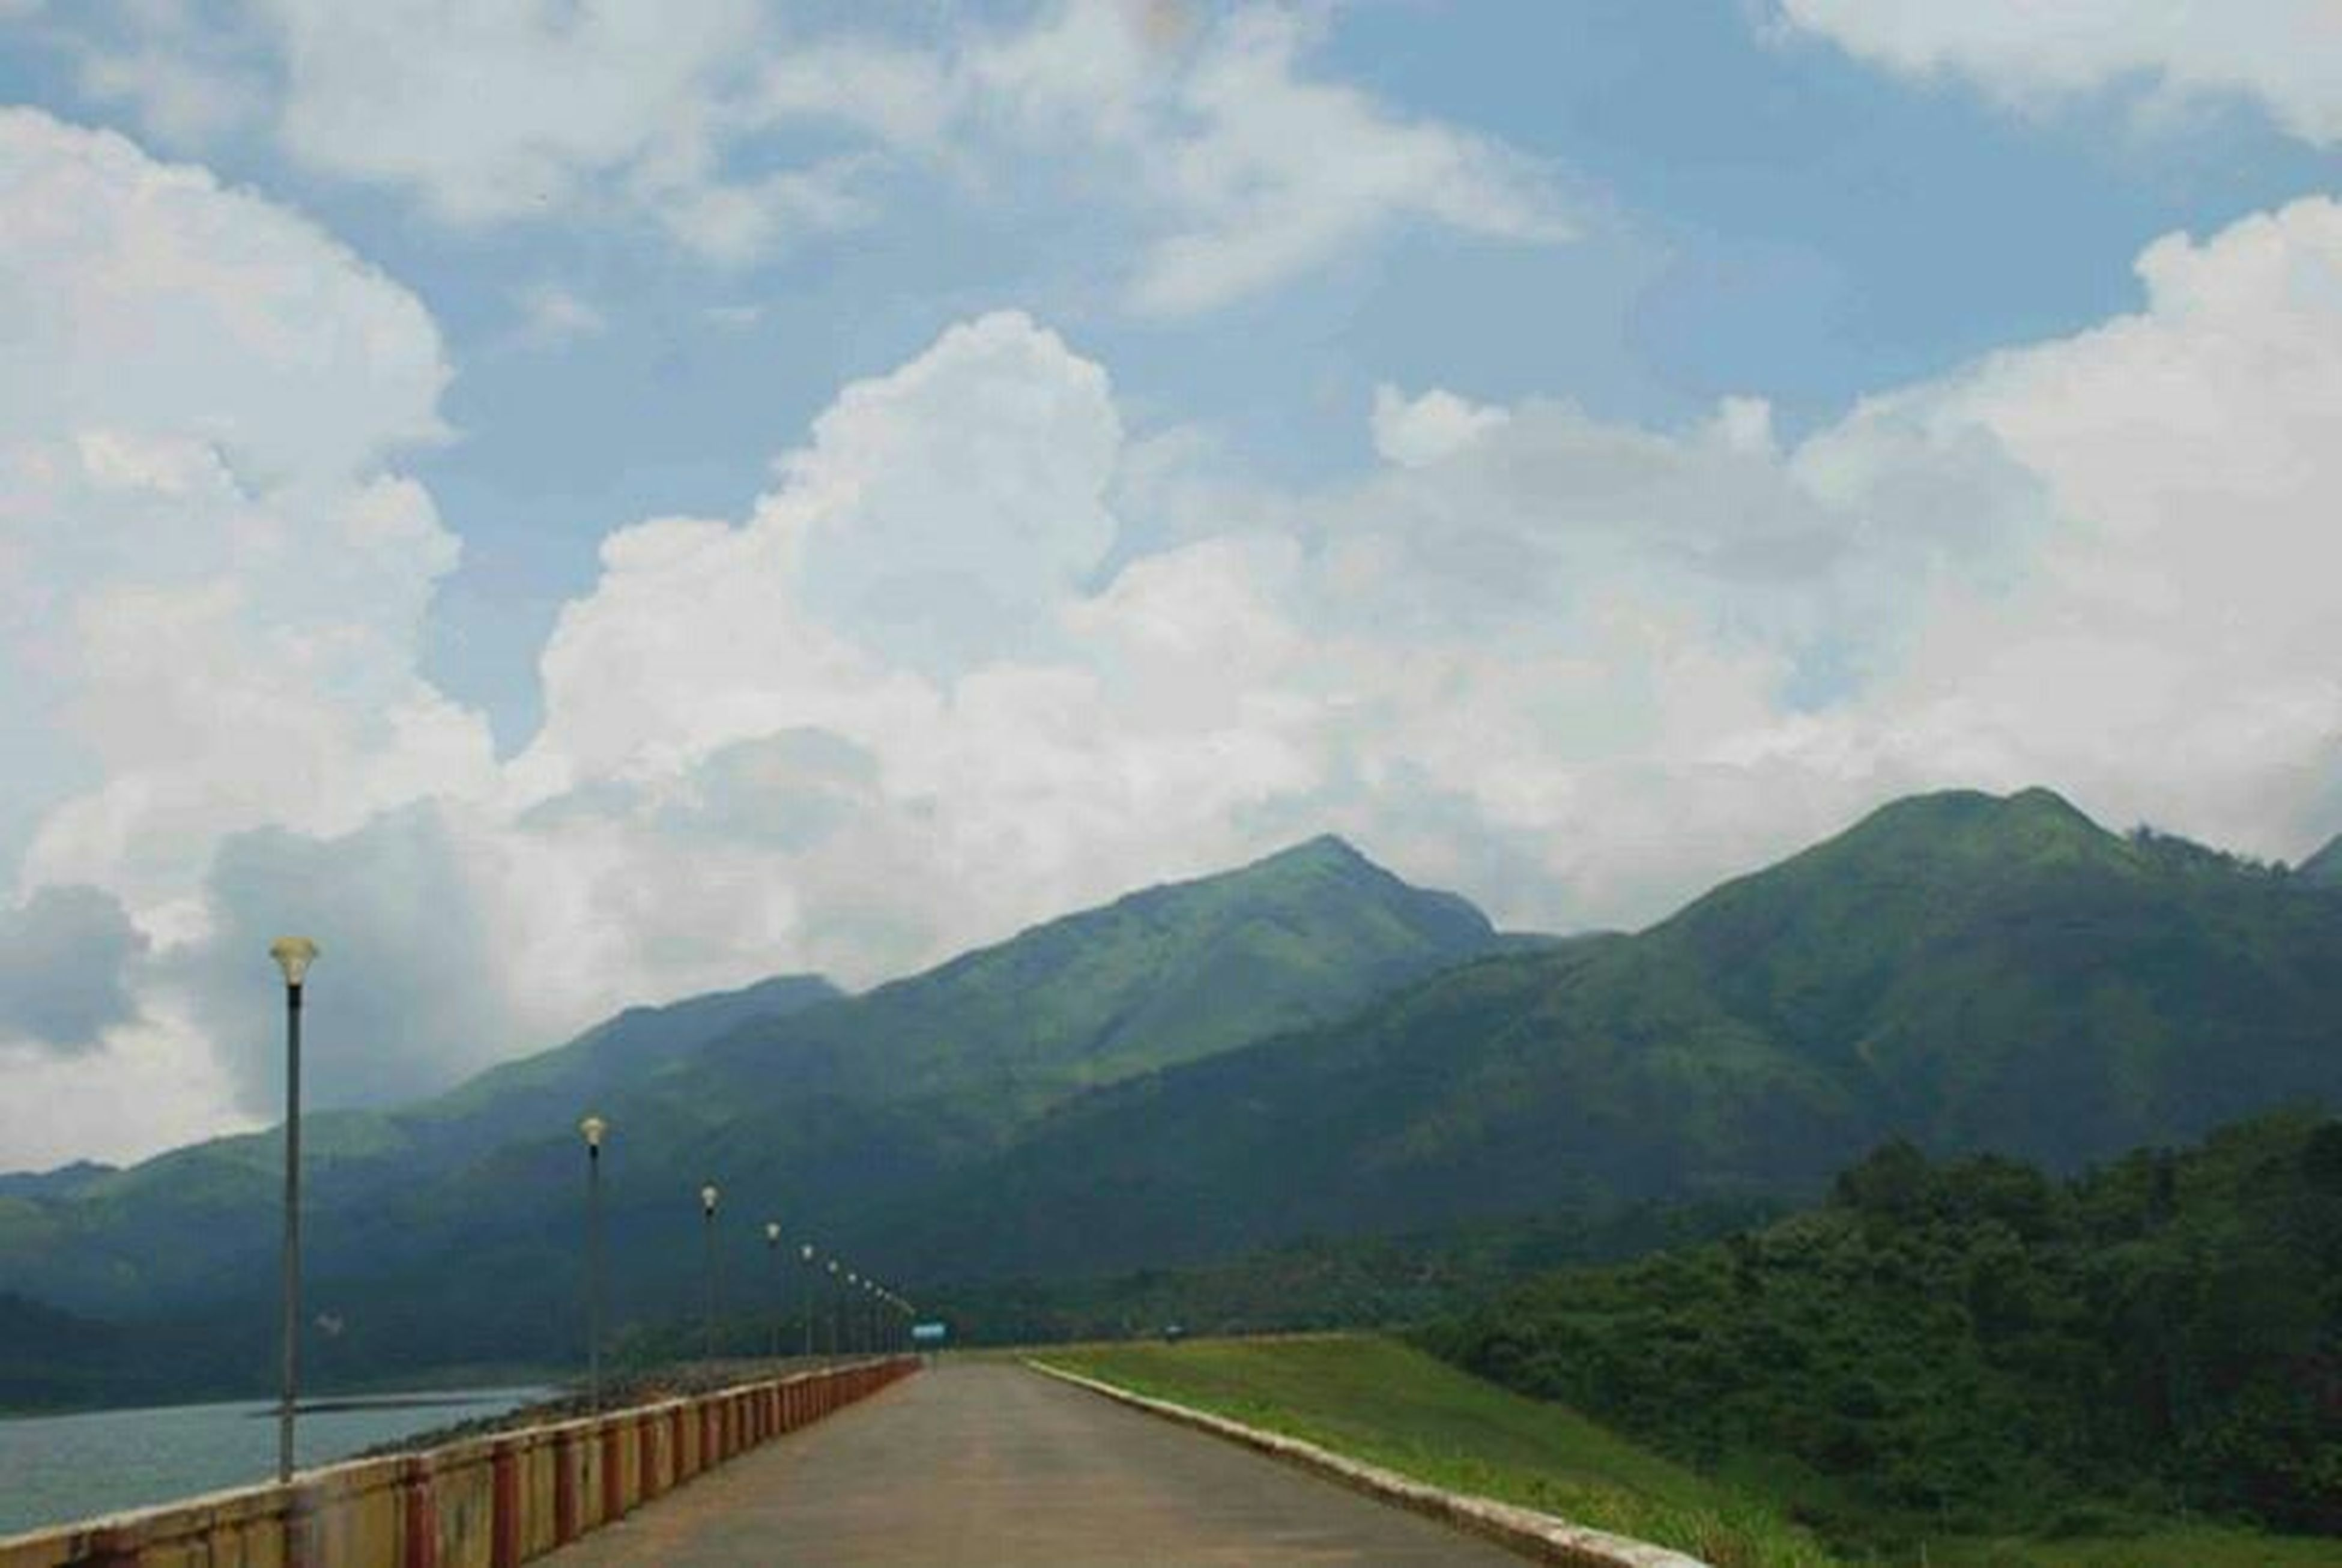 mountain, the way forward, sky, mountain range, tranquility, road, tranquil scene, cloud - sky, railing, scenics, nature, beauty in nature, diminishing perspective, cloudy, landscape, transportation, cloud, vanishing point, empty, non-urban scene